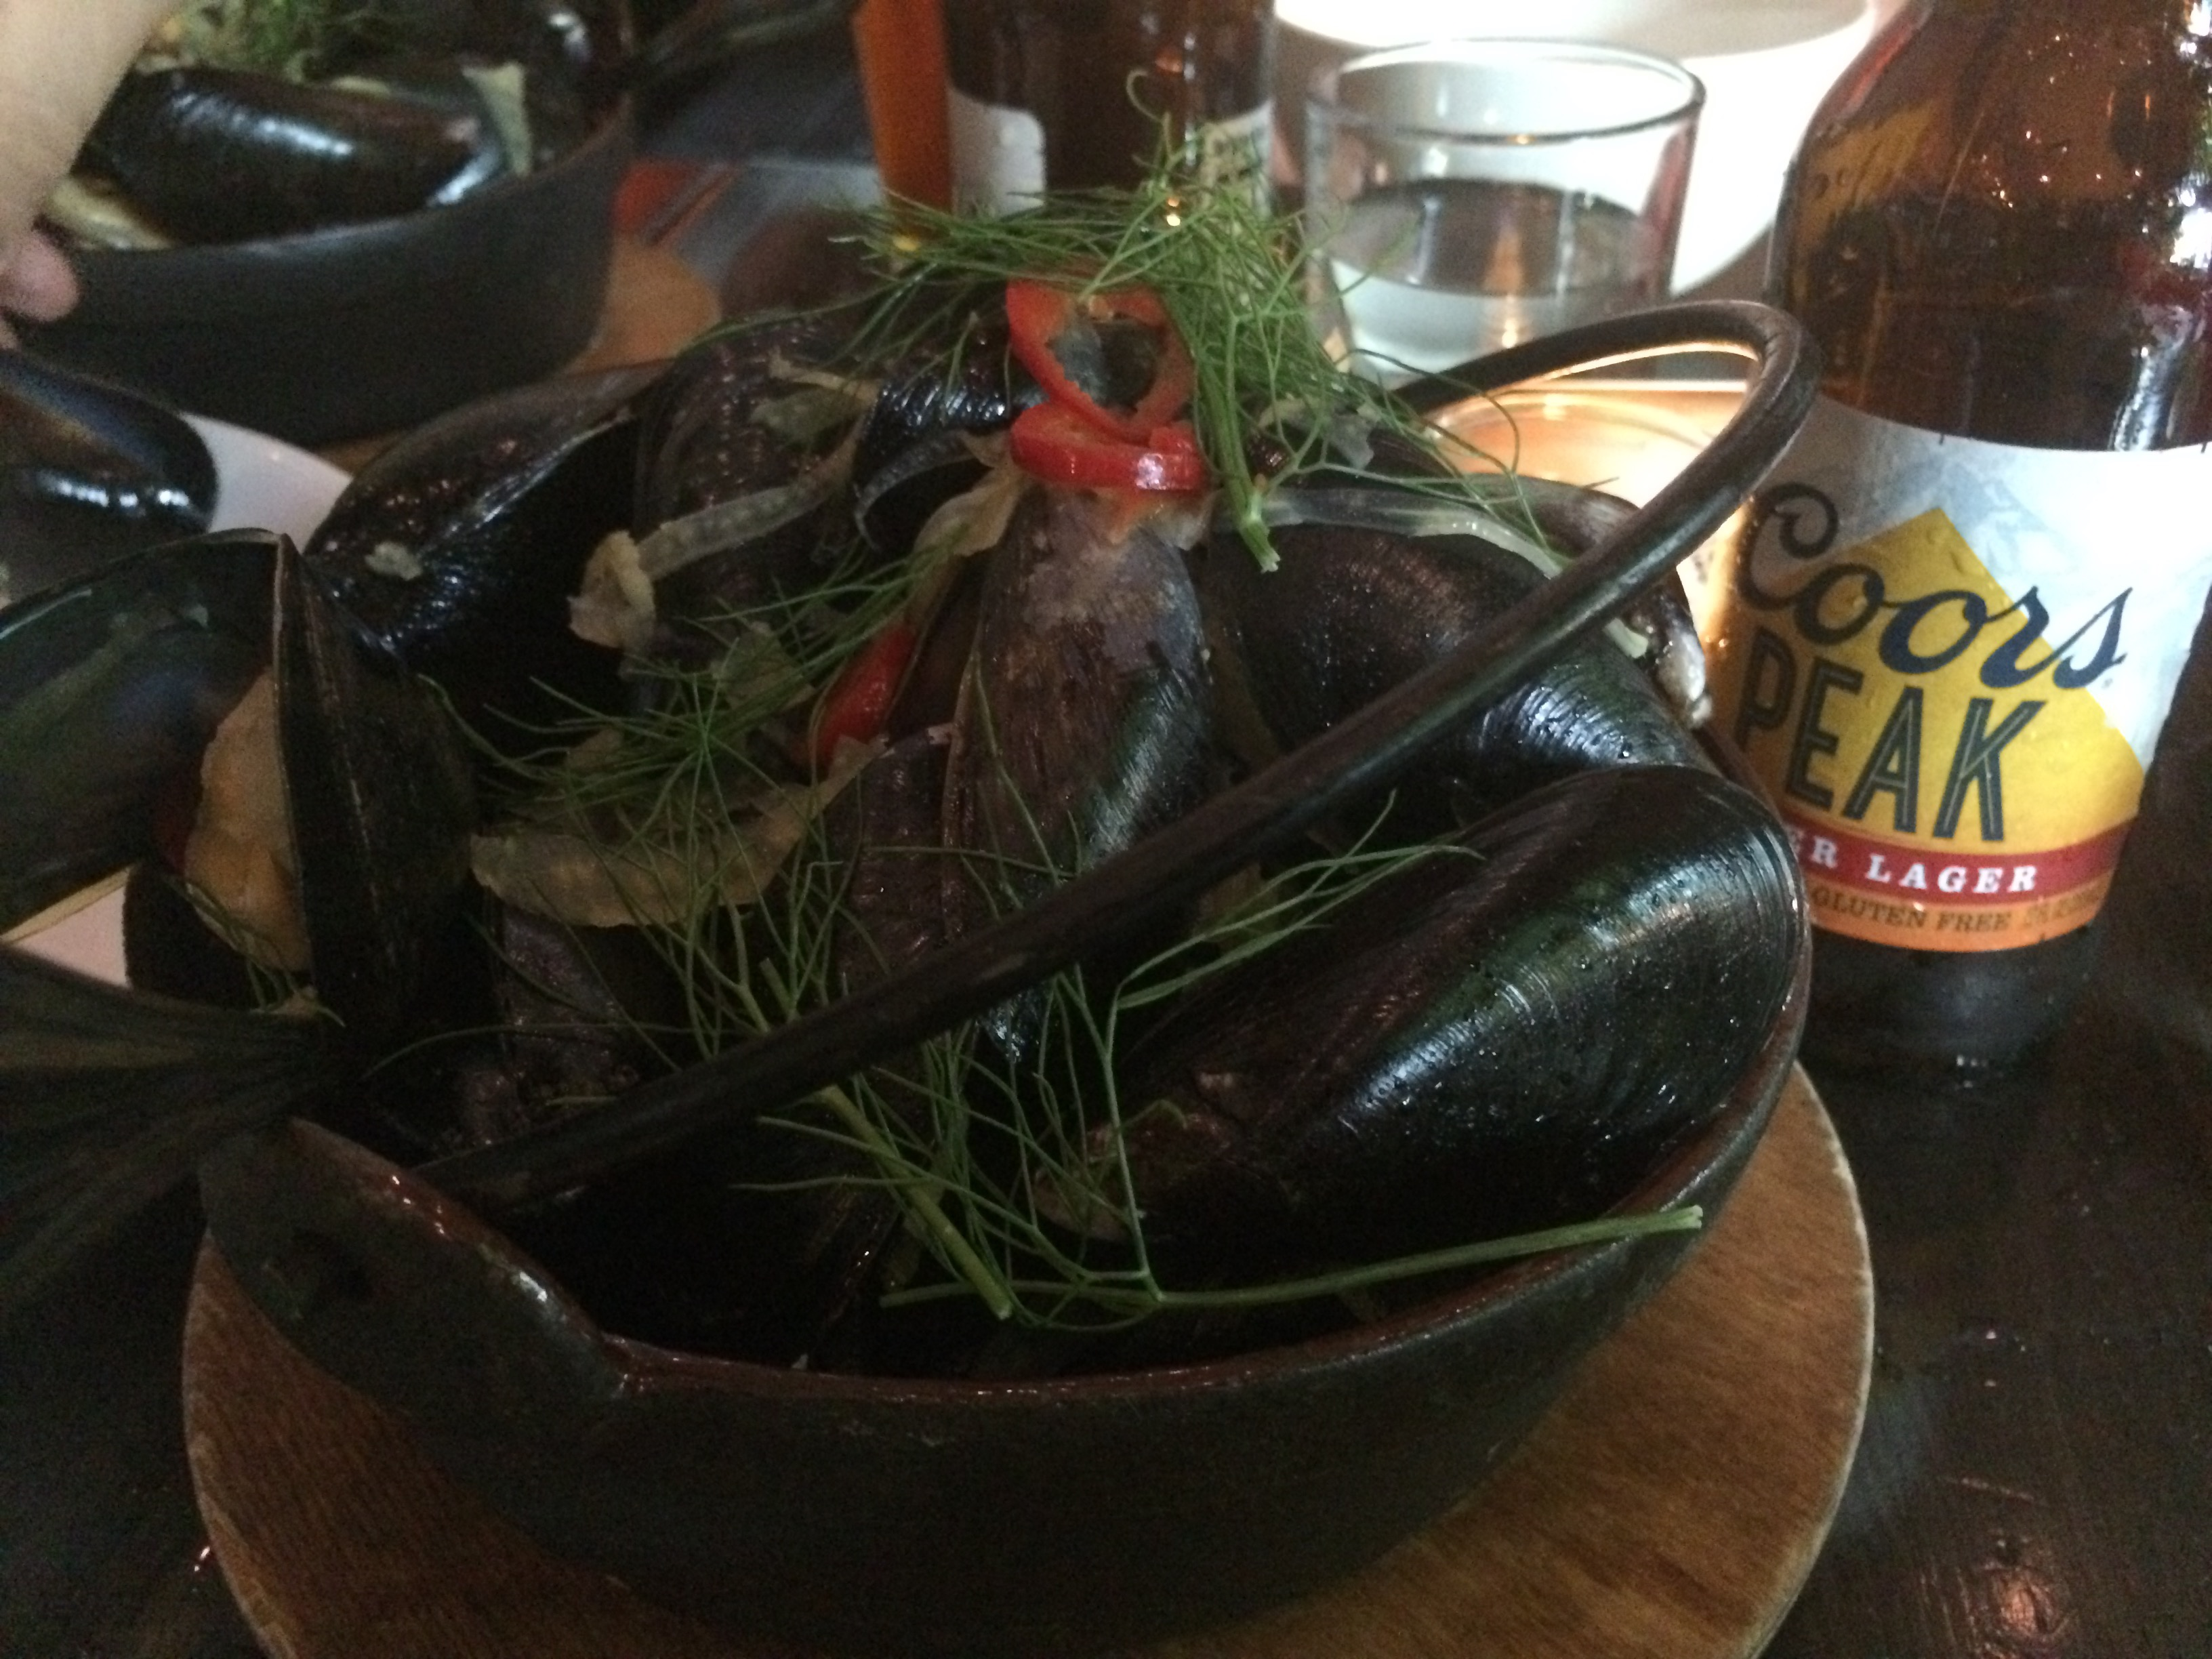 Mussels and Coors Peak at The Fireside